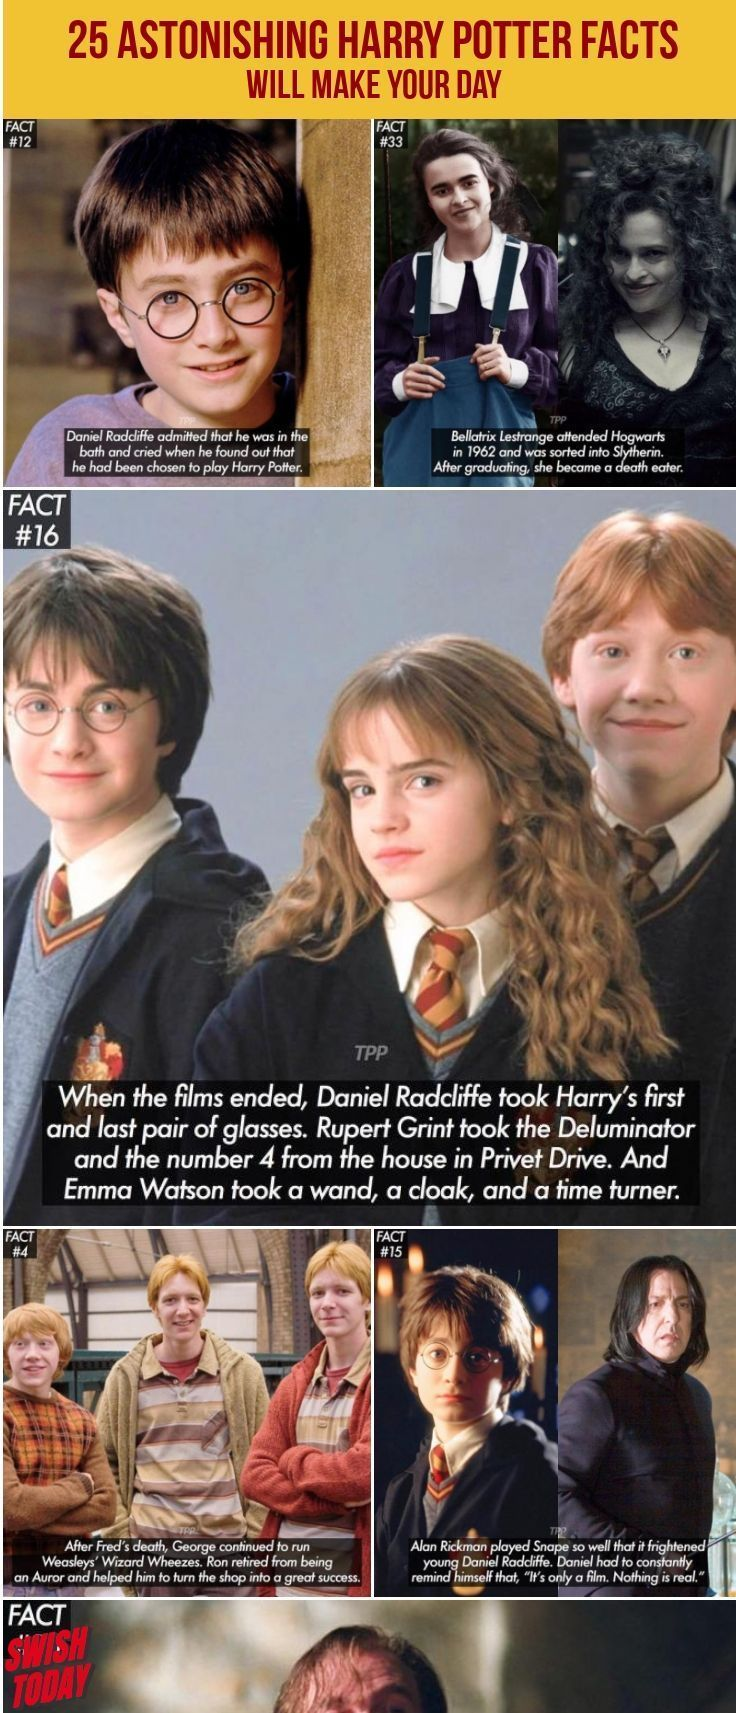 25 Astonishing Harry Potter Facts Will Make Your Day Facts Harry Potter Potter Facts Unexpected Fun Facts Om Harry Potter Facts Potter Facts Harry Potter